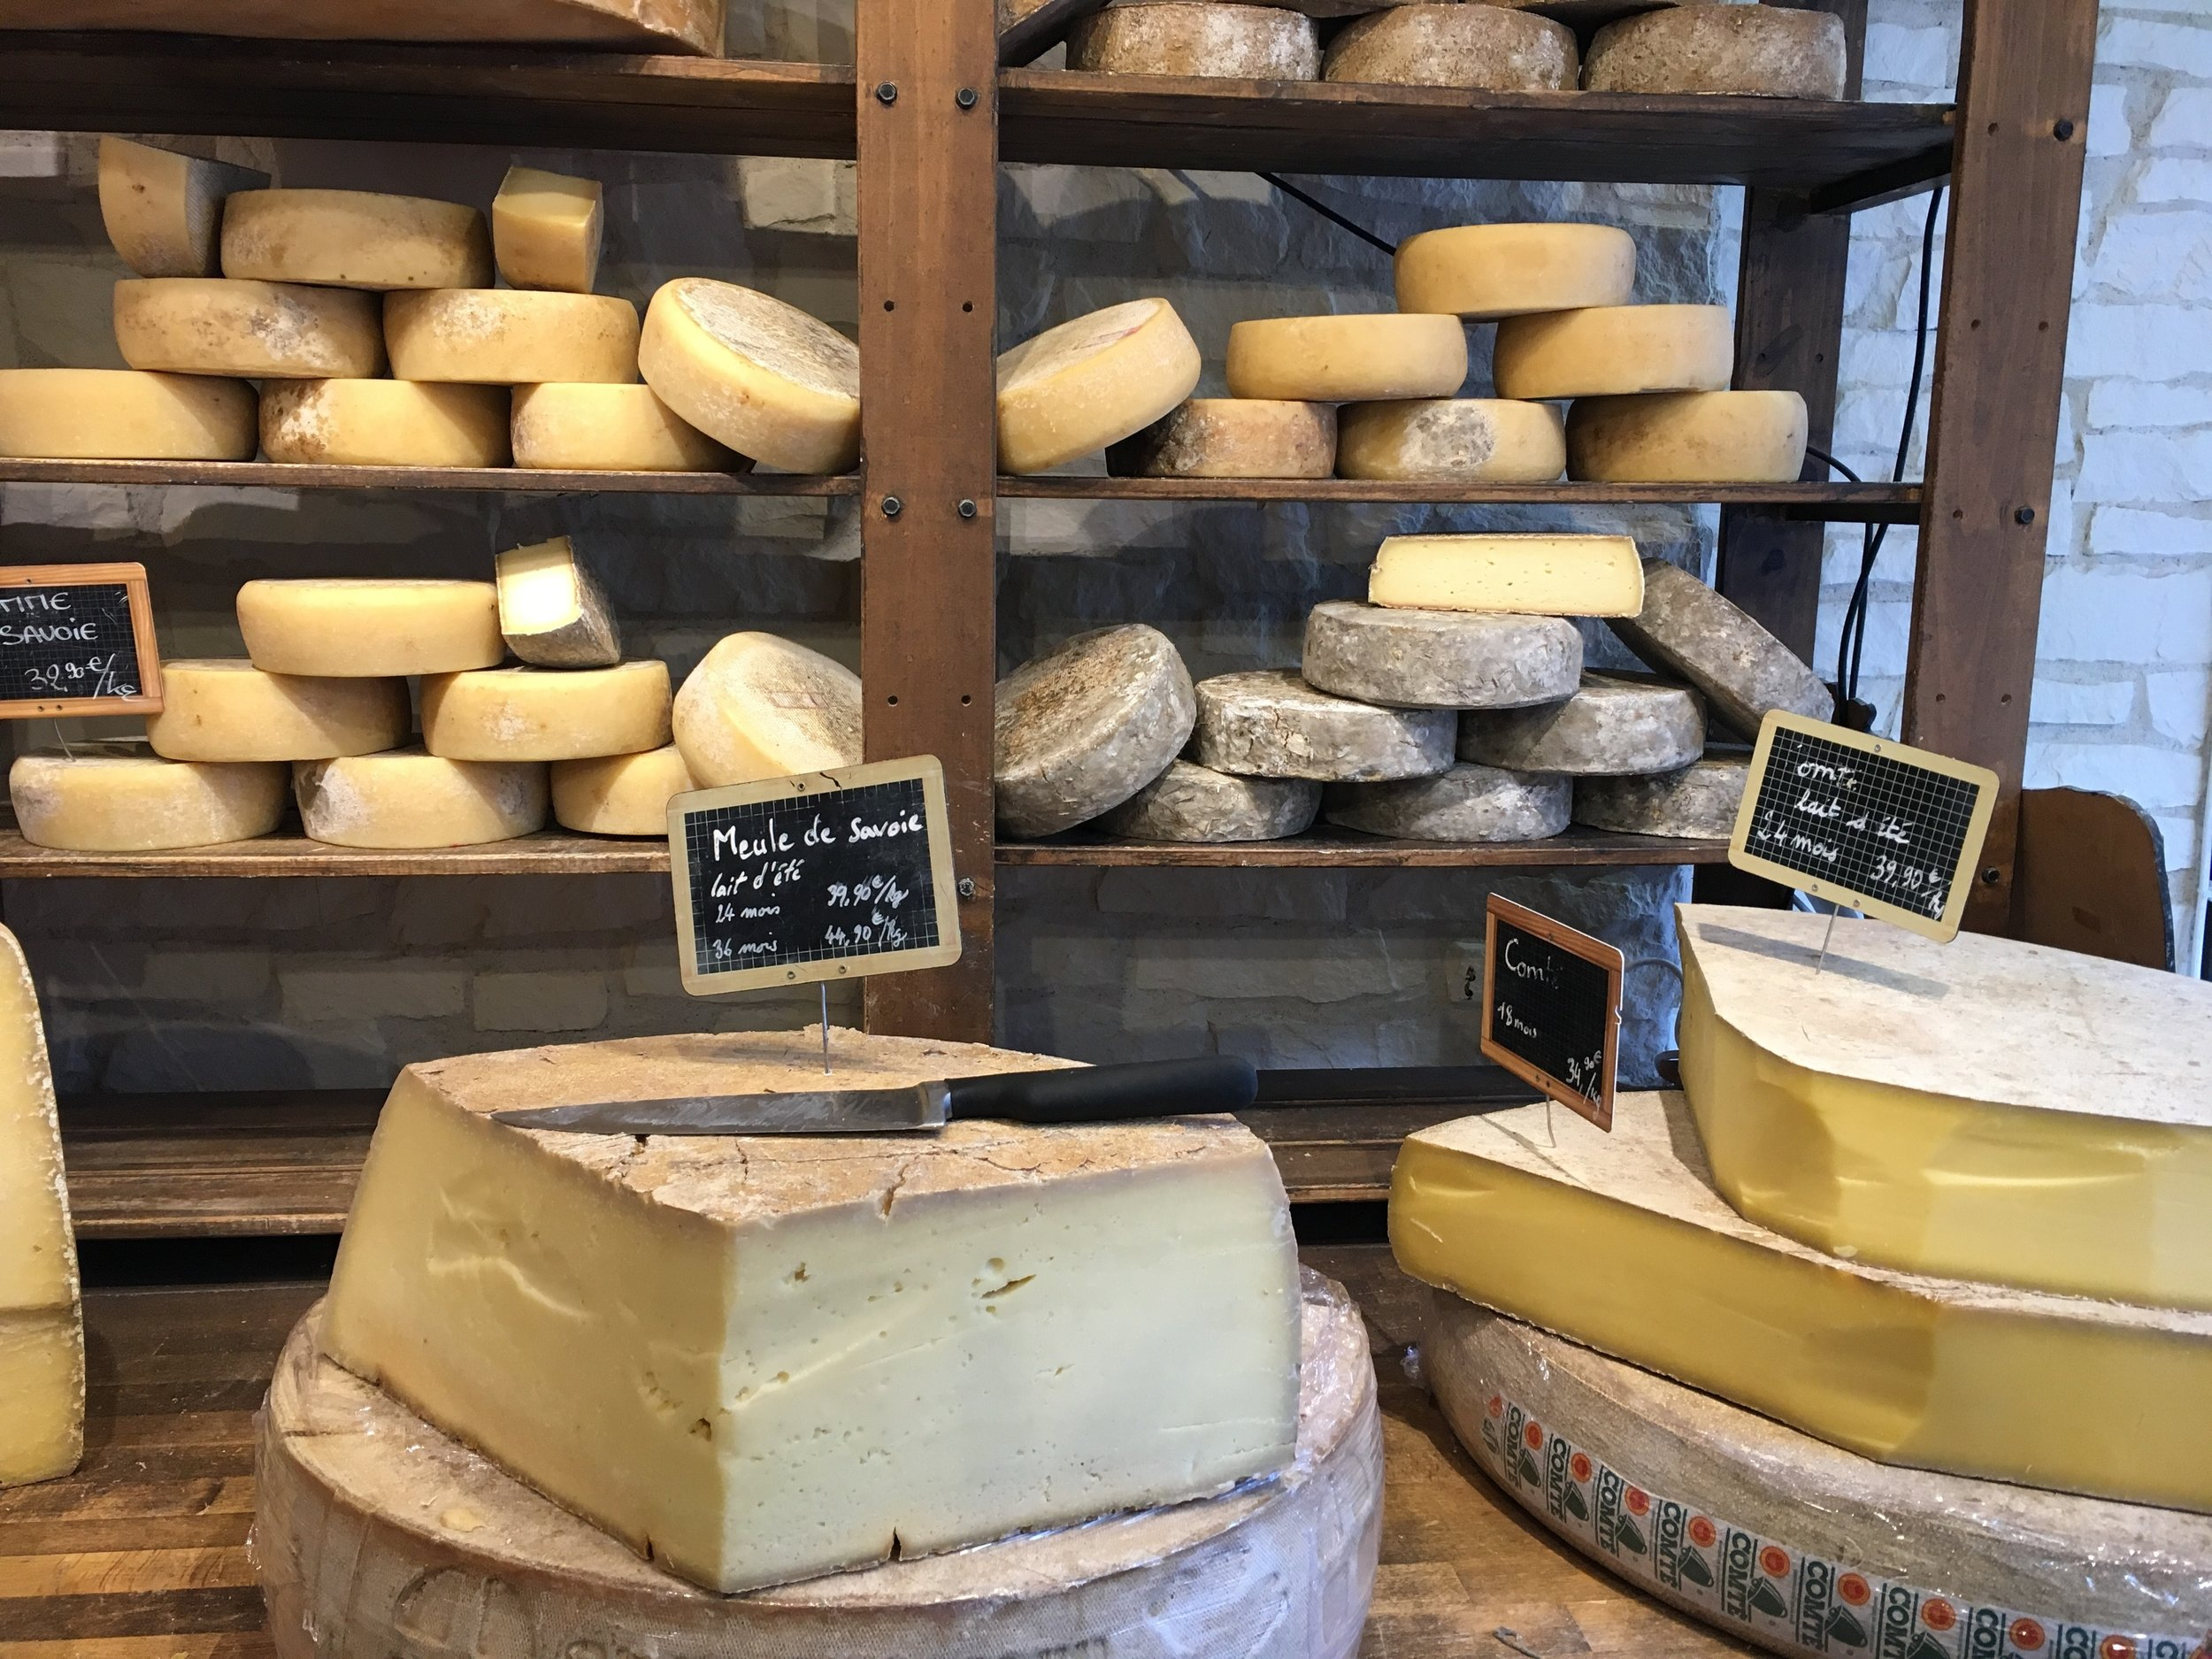 Cheese - A mouthwatering selection of exquisite Italian cheeses: Mozzarella, Mascarpone, Ricotta, Goats Cheese, Caprino, Pecorino e Pere, Pecorino al tartufo, Pecorino con le noci, Pecorino al cioccolato, Cacio butterino misto, Pecorino toscano stagionato and much more. Download the full product list HERE